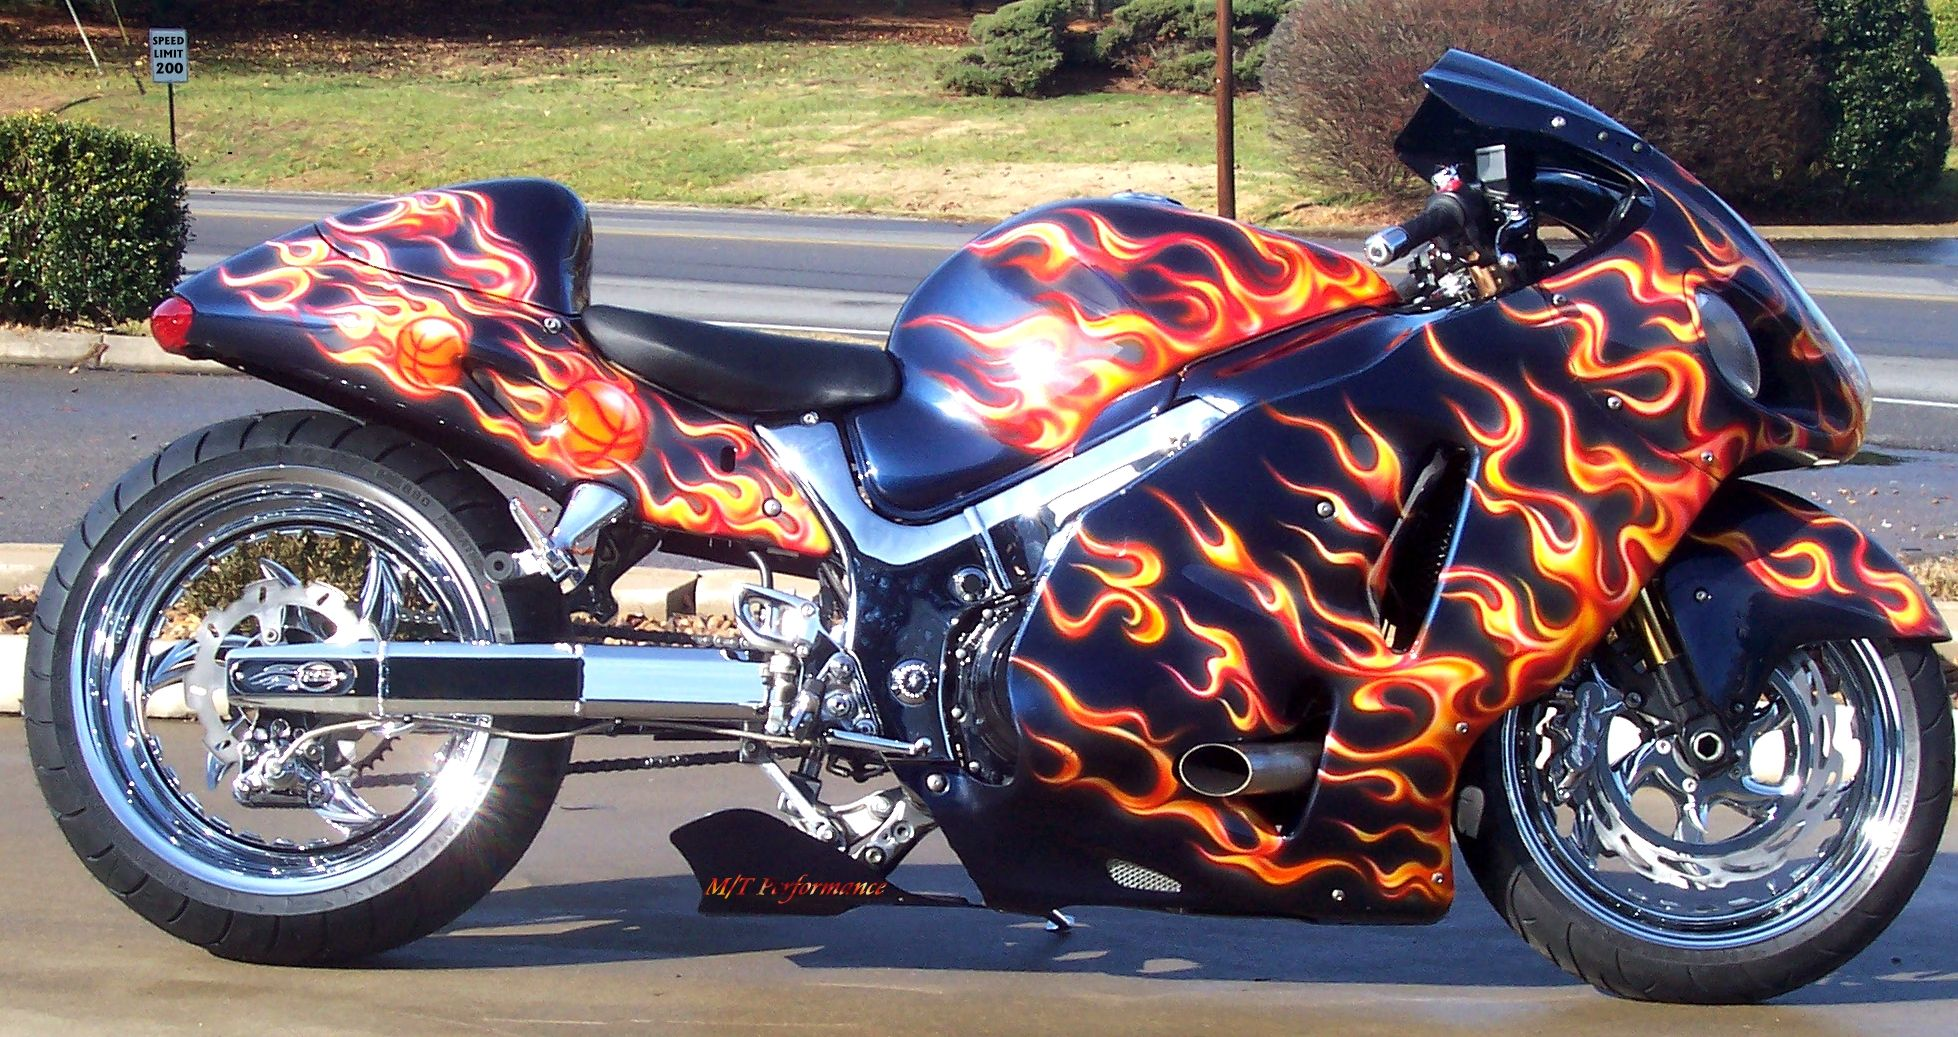 So fast it caught fire lol! Motorcycle, Super bikes